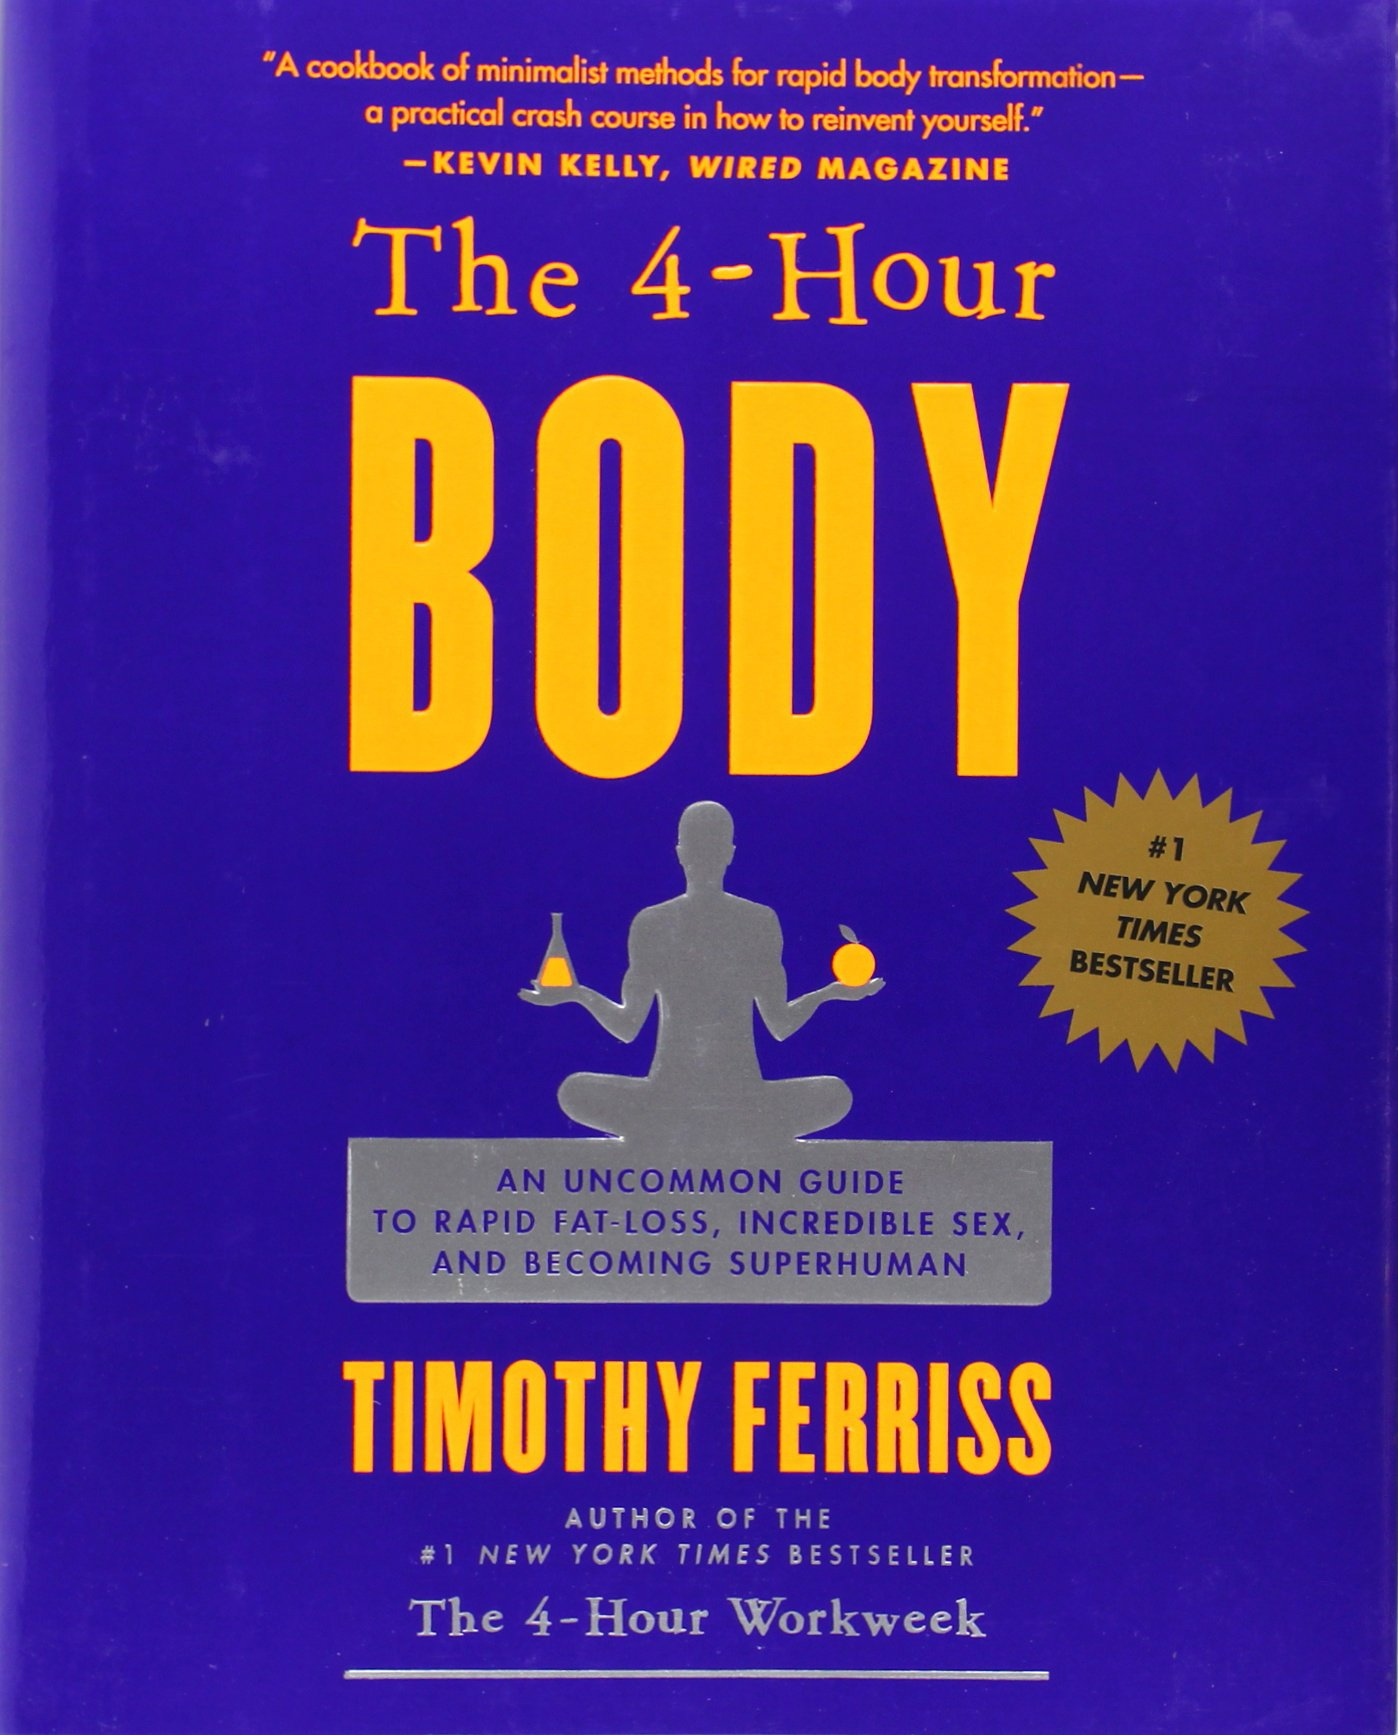 The 4-Hour Body, by Timothy Ferriss